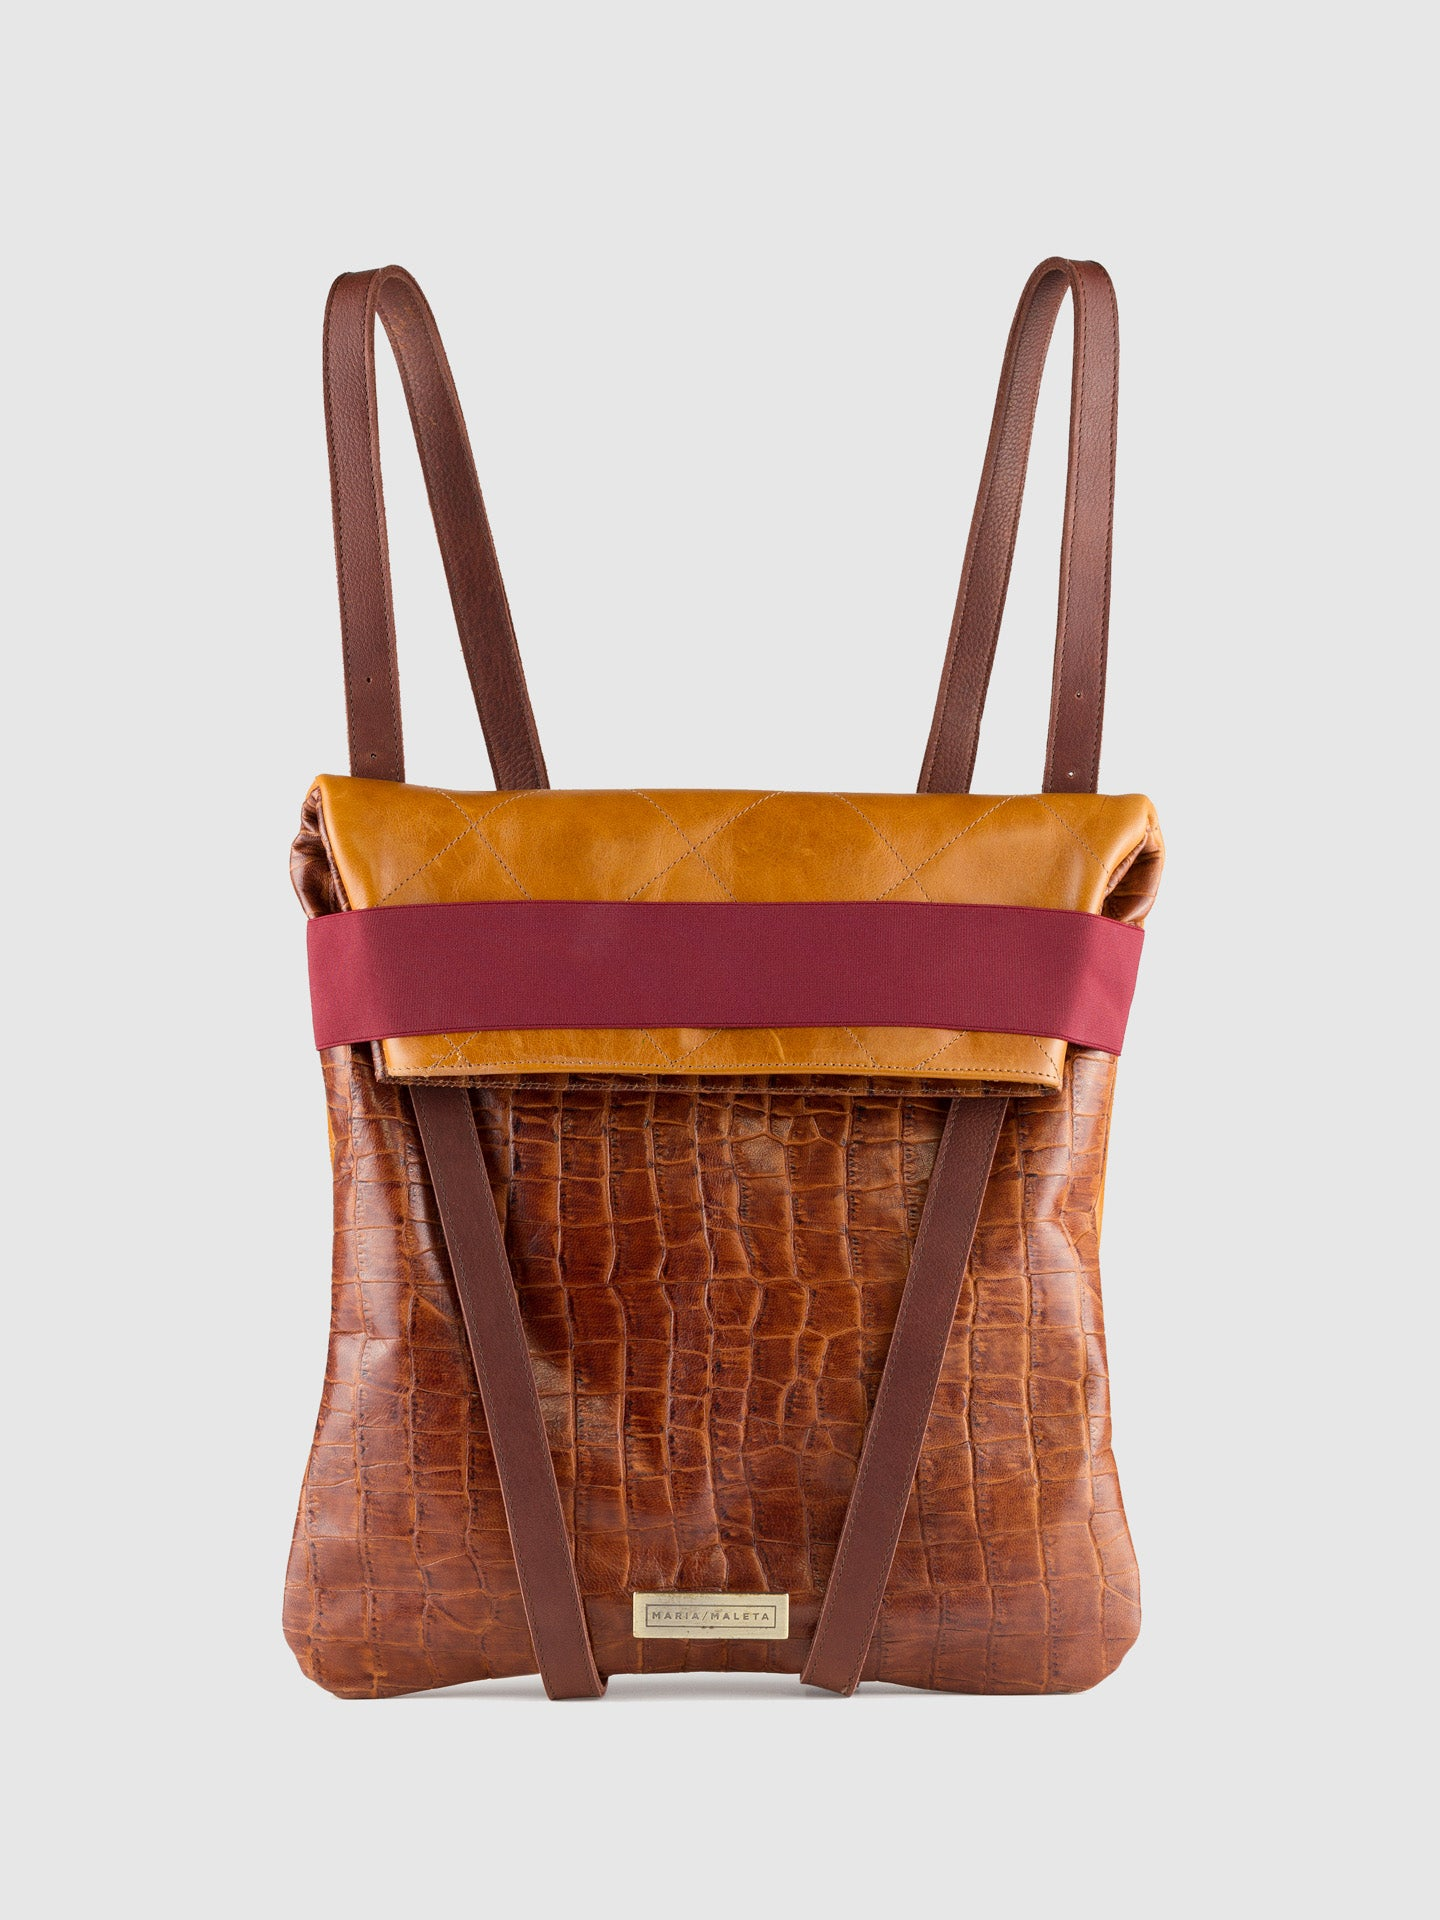 Maria Maleta Brown Leather Reversible Backpack